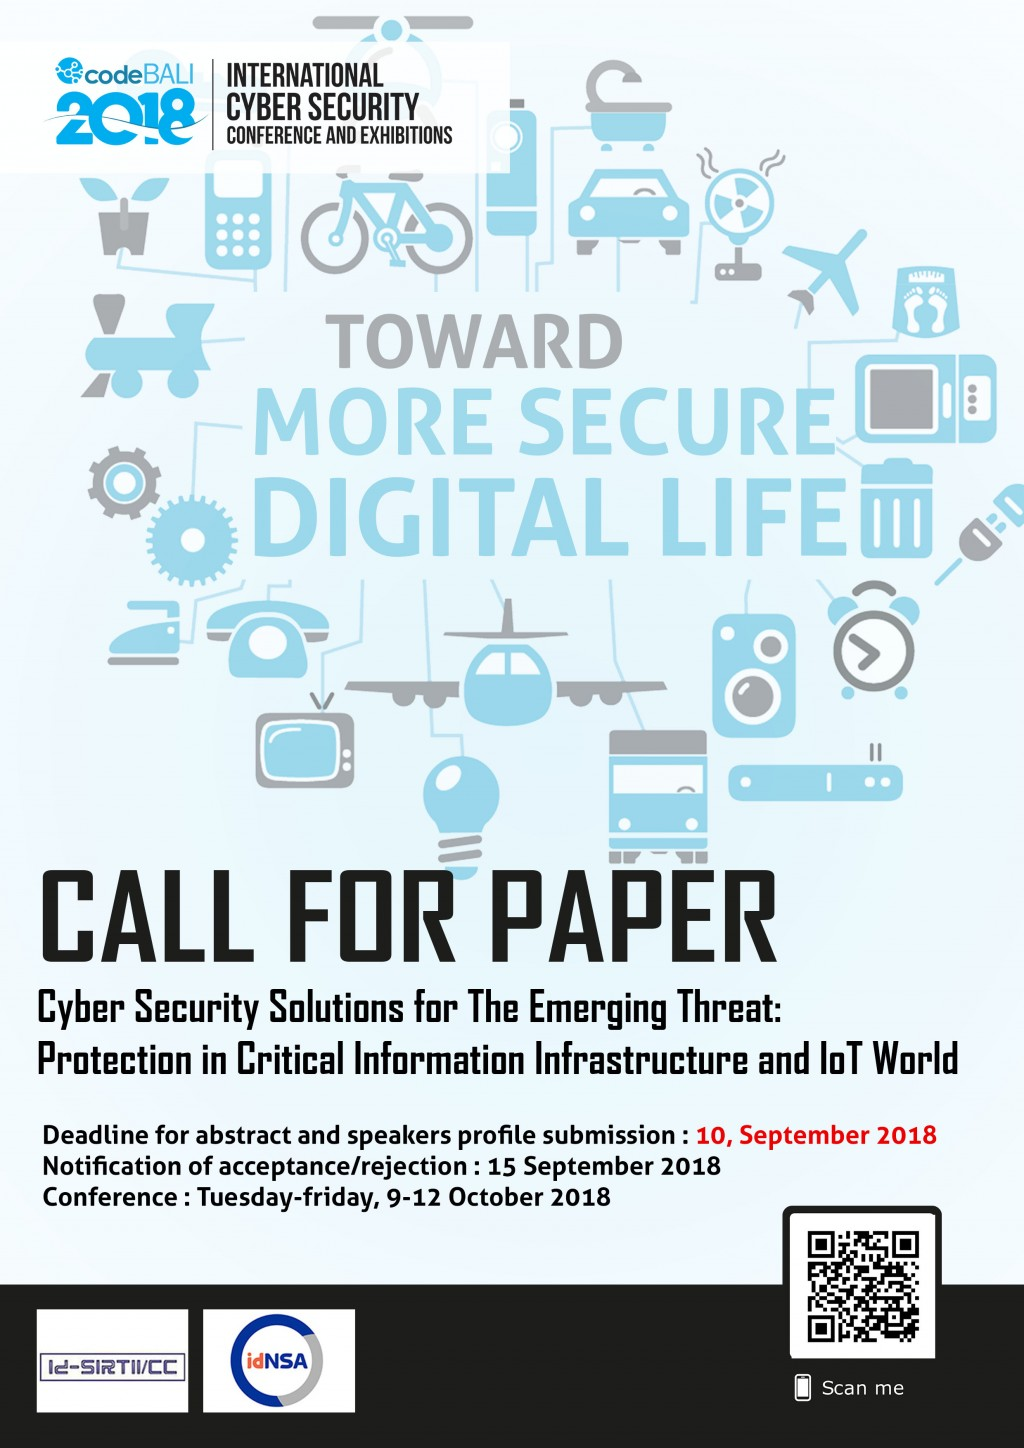 013 Research Paper Cyber Security Papers Wondrous 2018 Pdf Large